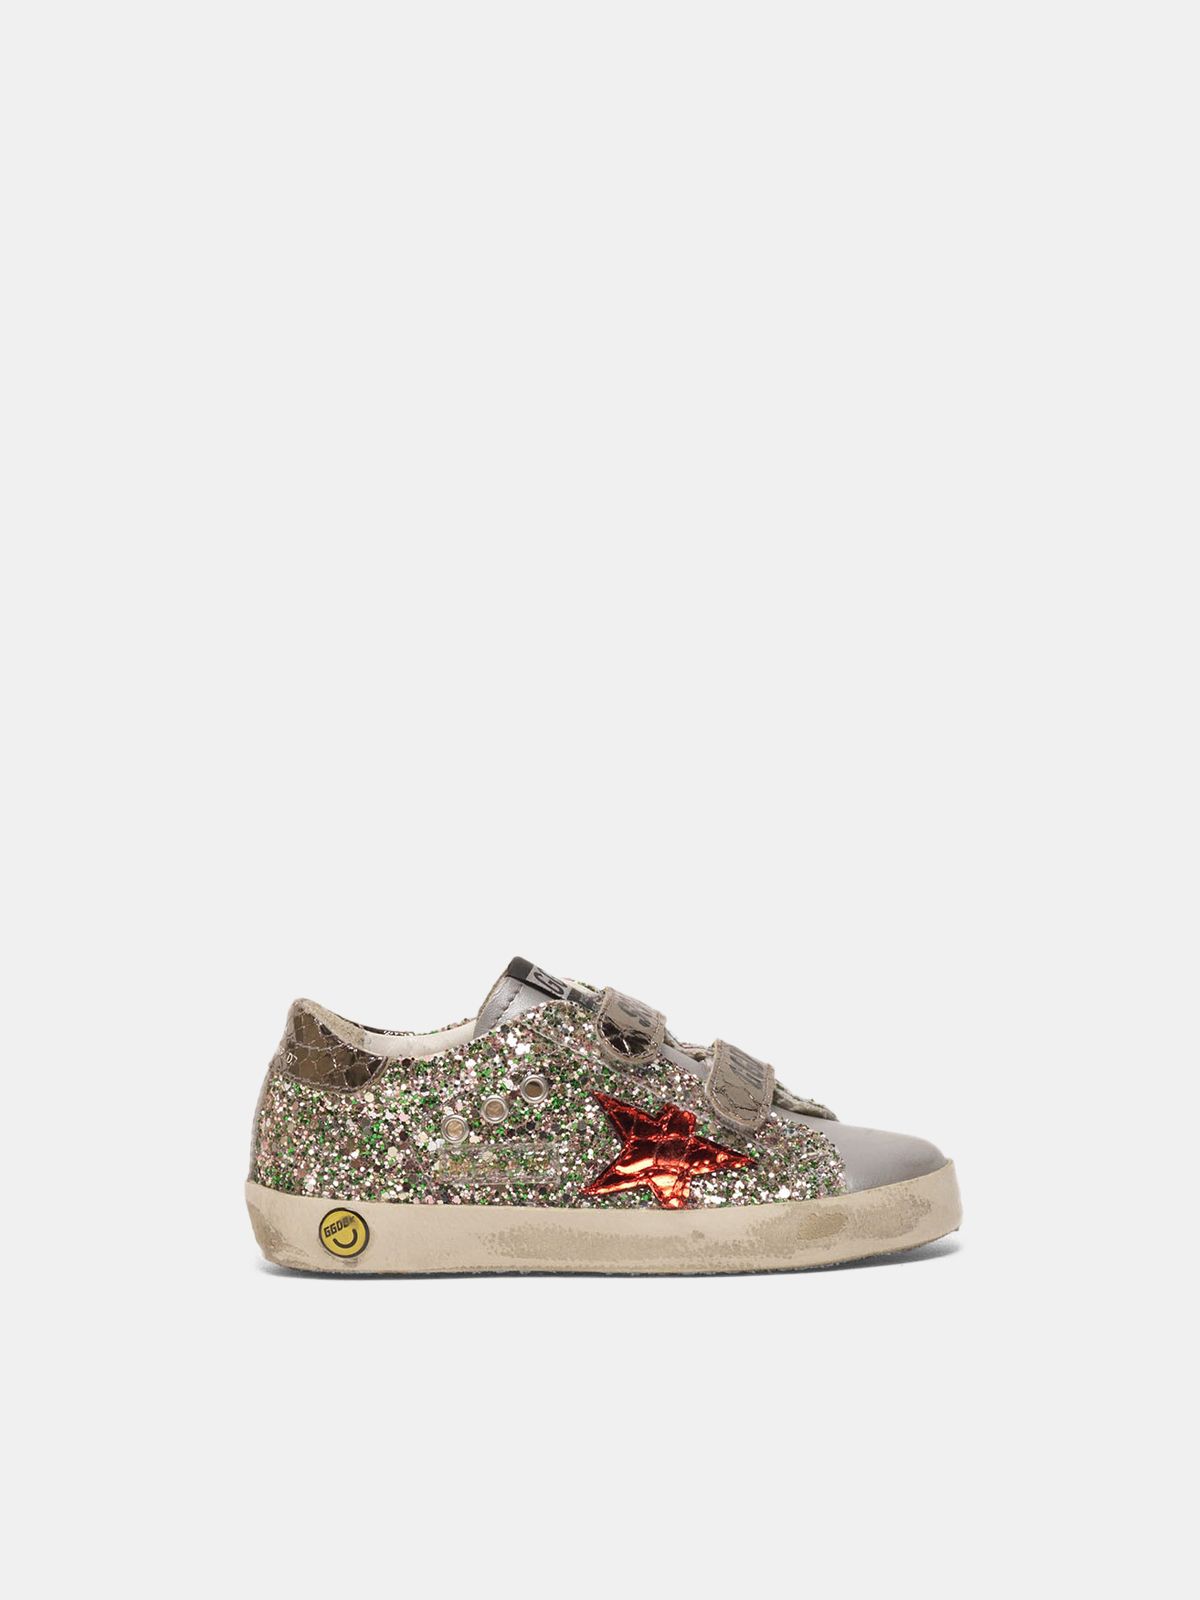 Golden Goose - Old School sneakers with glitter and red star in